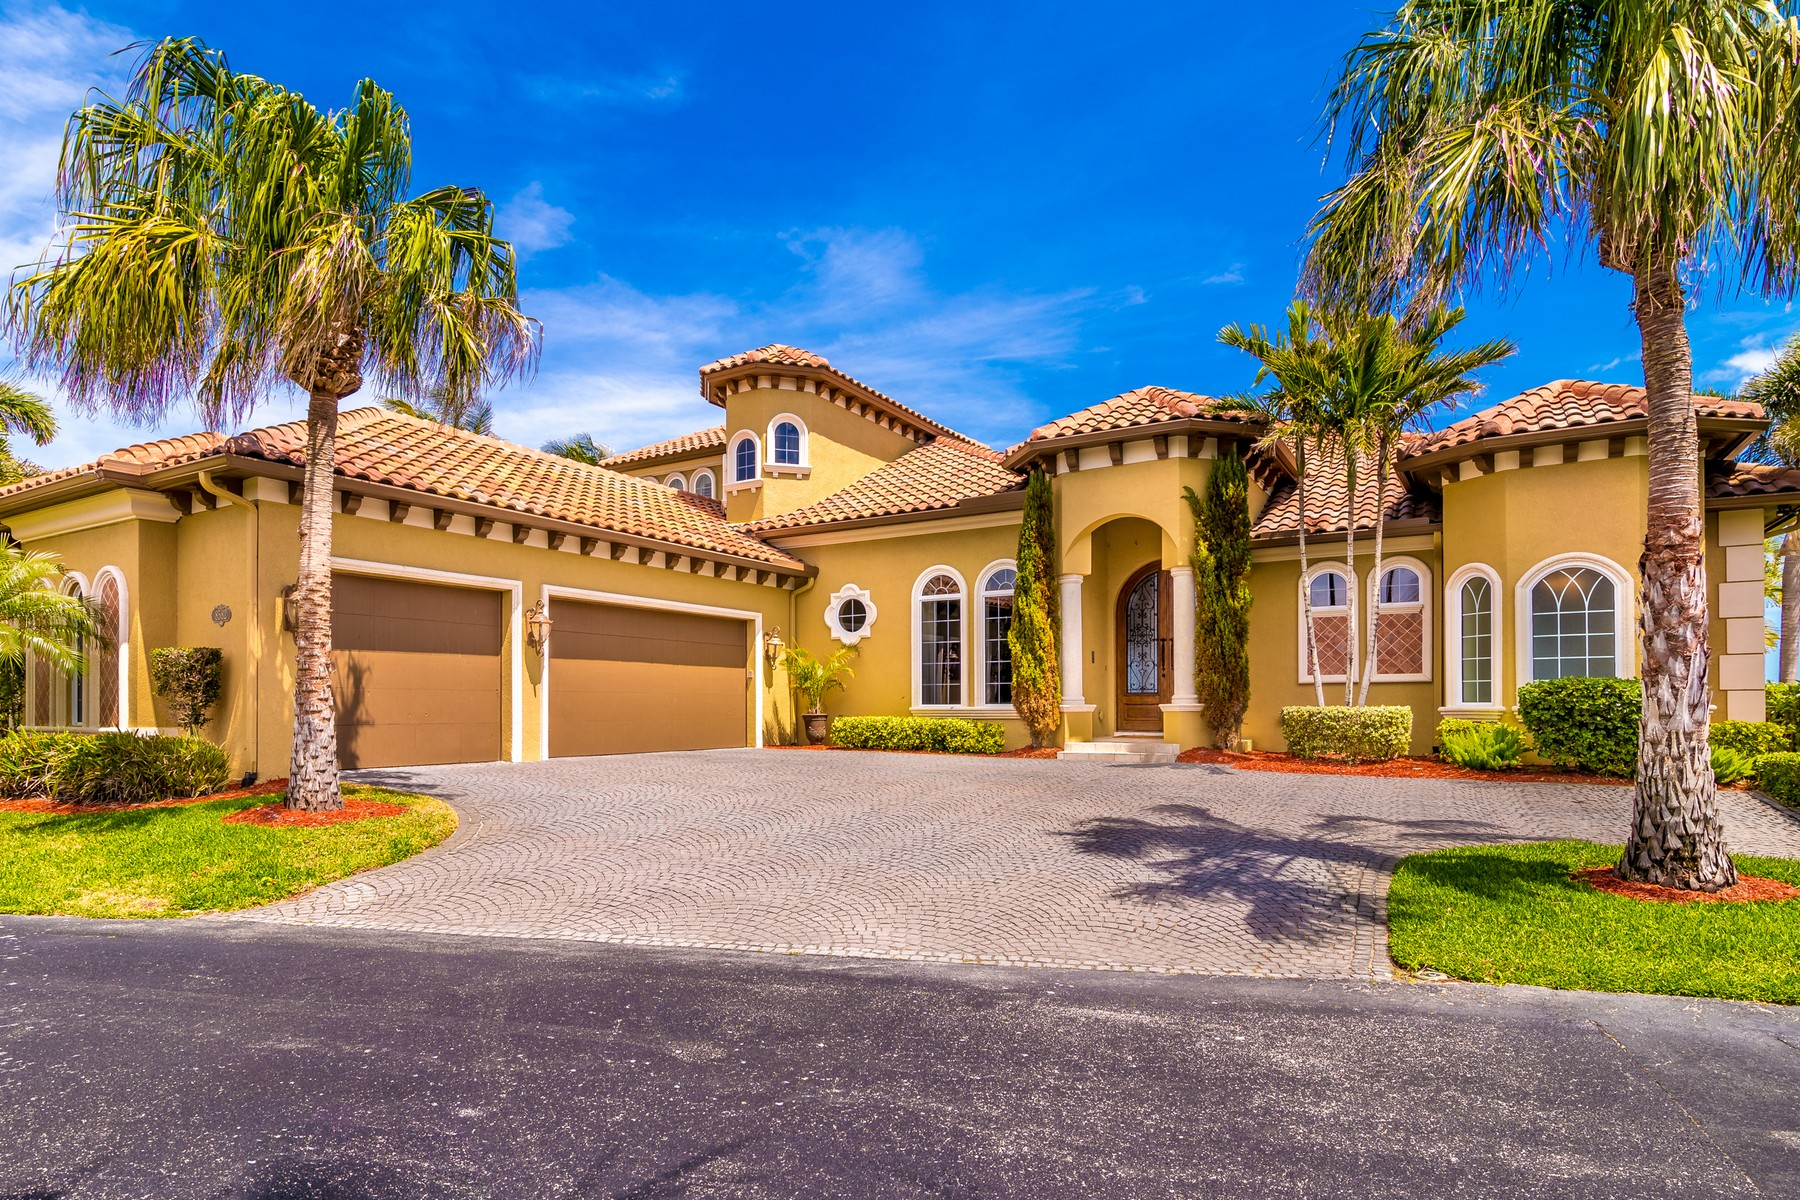 Additional photo for property listing at An Absolute Gem! 8582 Eden Isles Merritt Island, Florida 32952 Estados Unidos